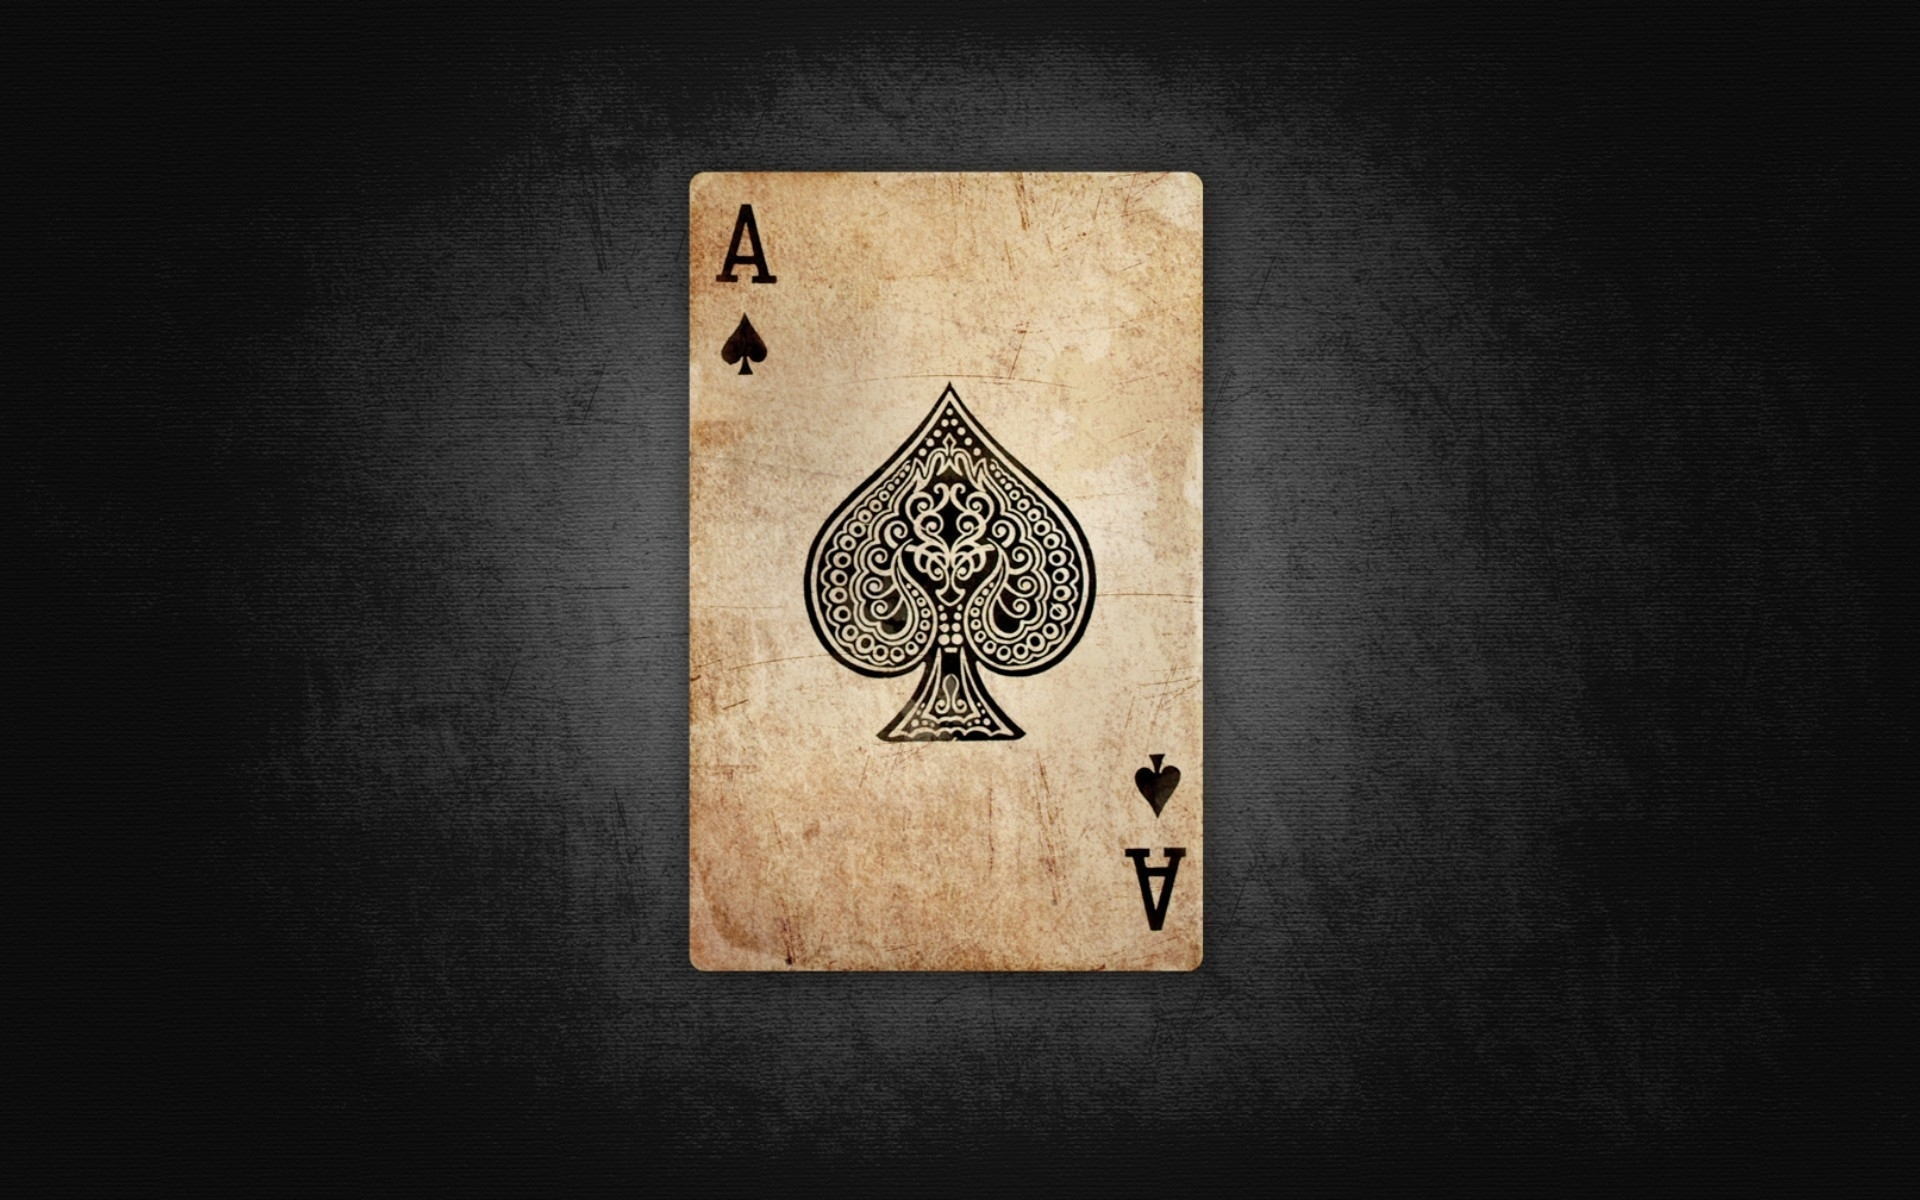 ace of spades wallpaper hd (60+ images)